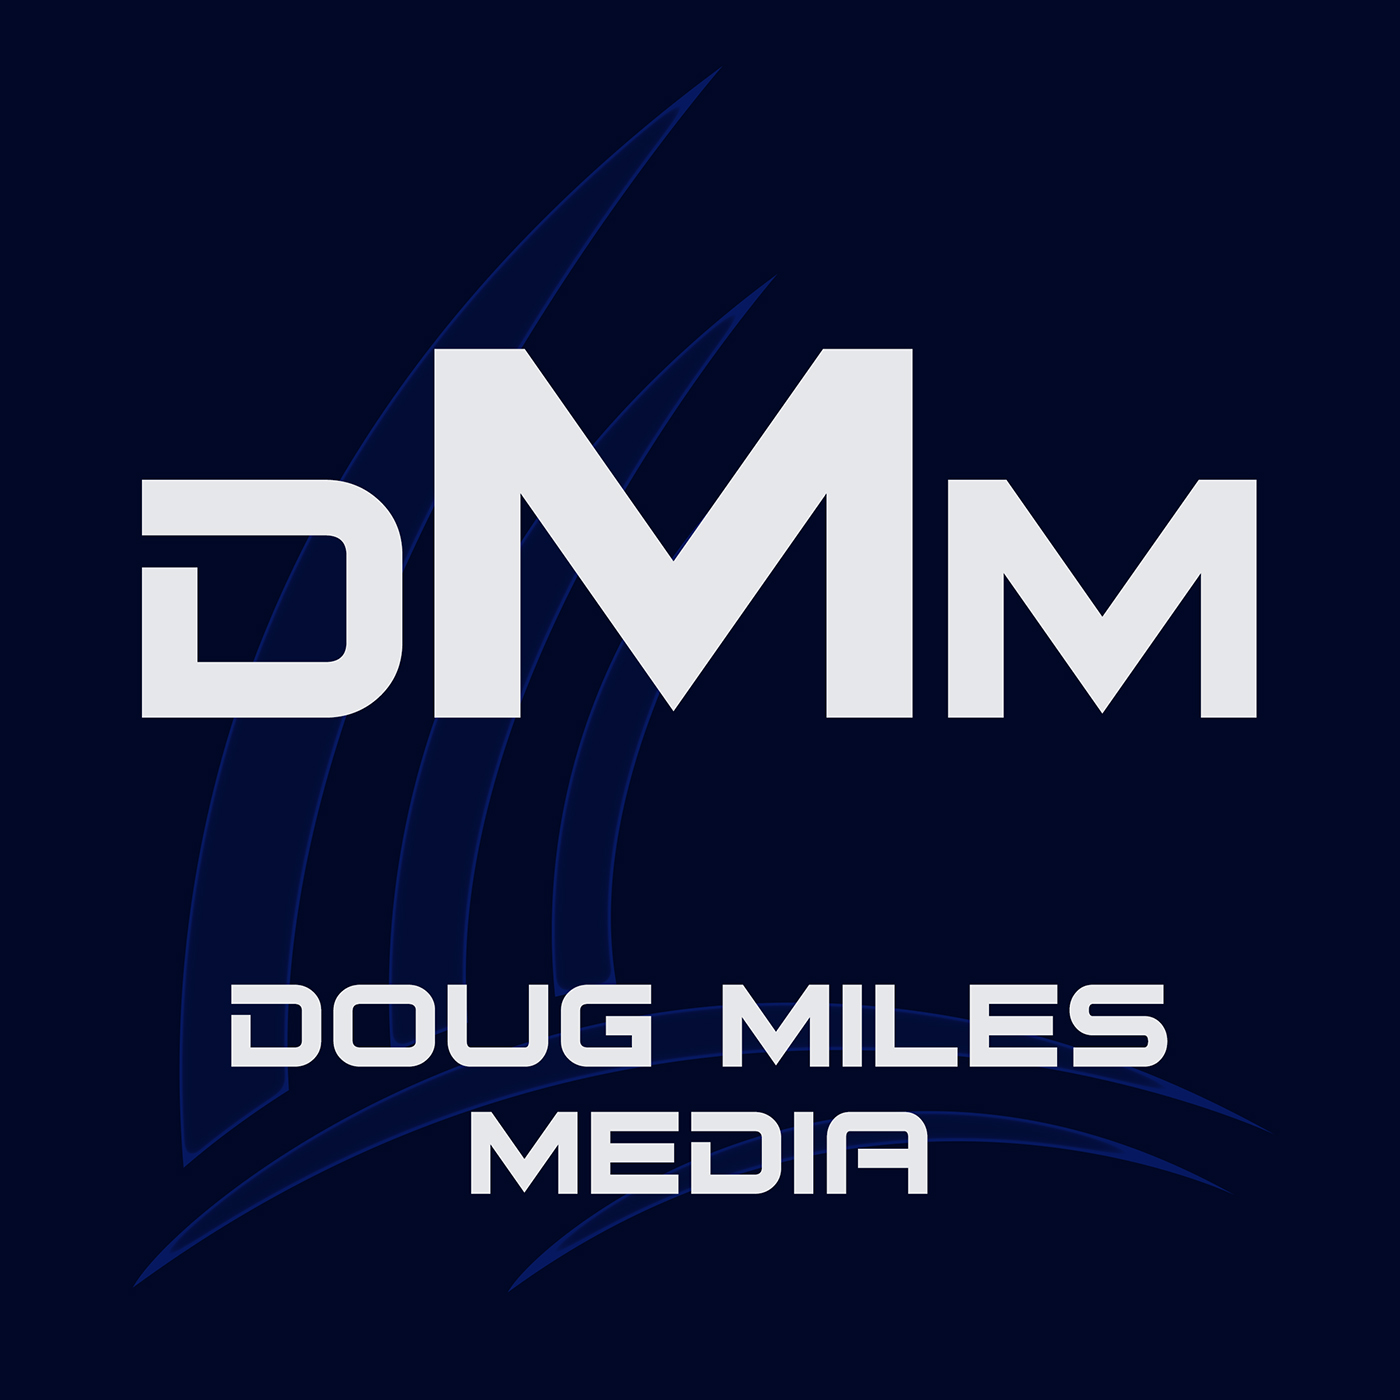 Image result for doug miles media -site:pinterest.com